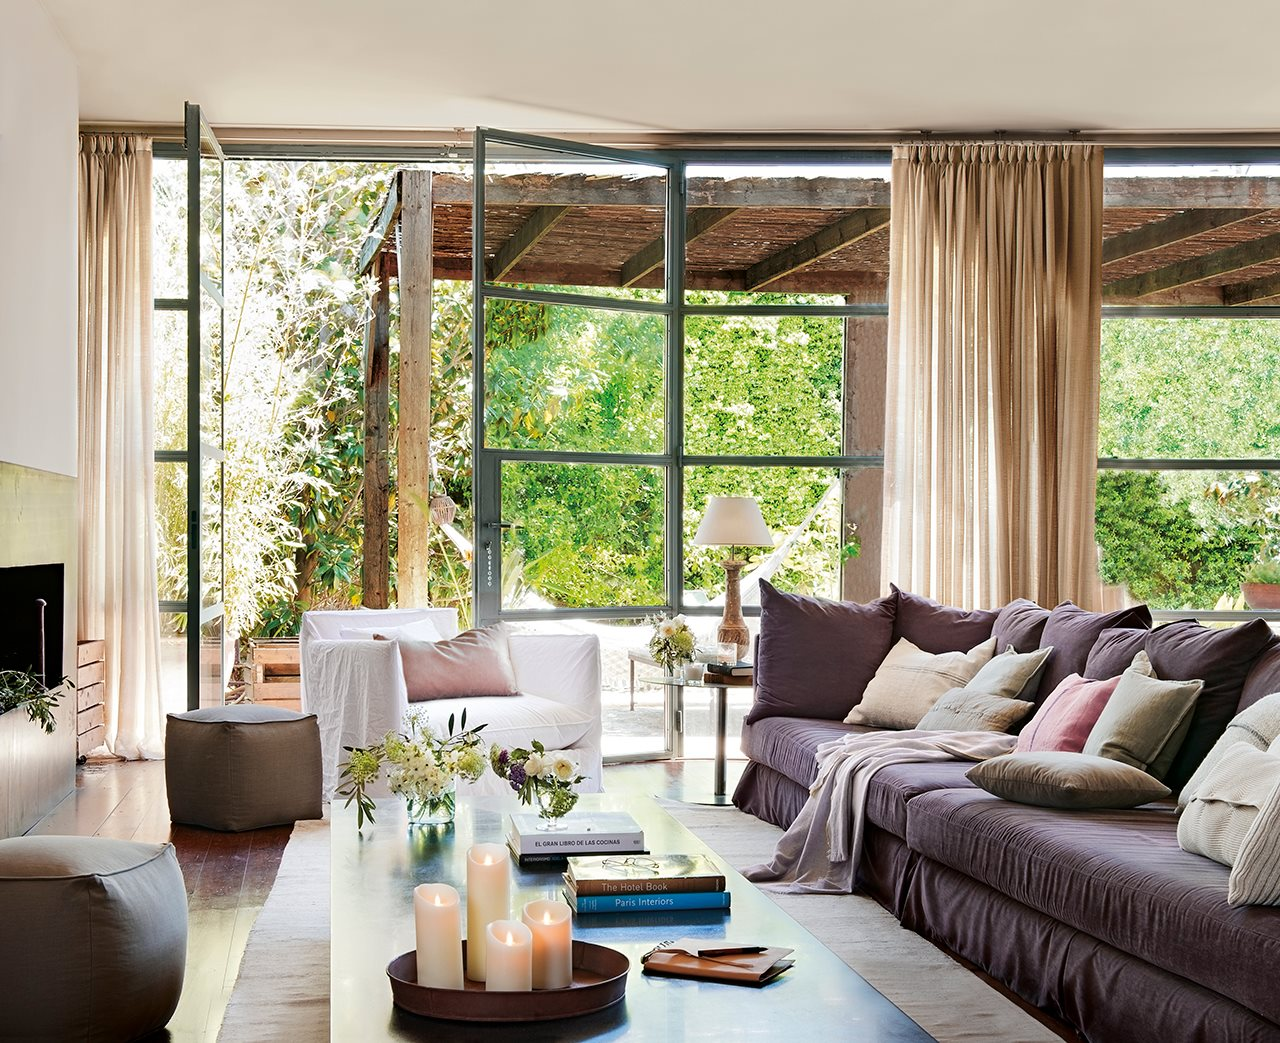 decordemon: A country house adapted to a relaxed lifestyle